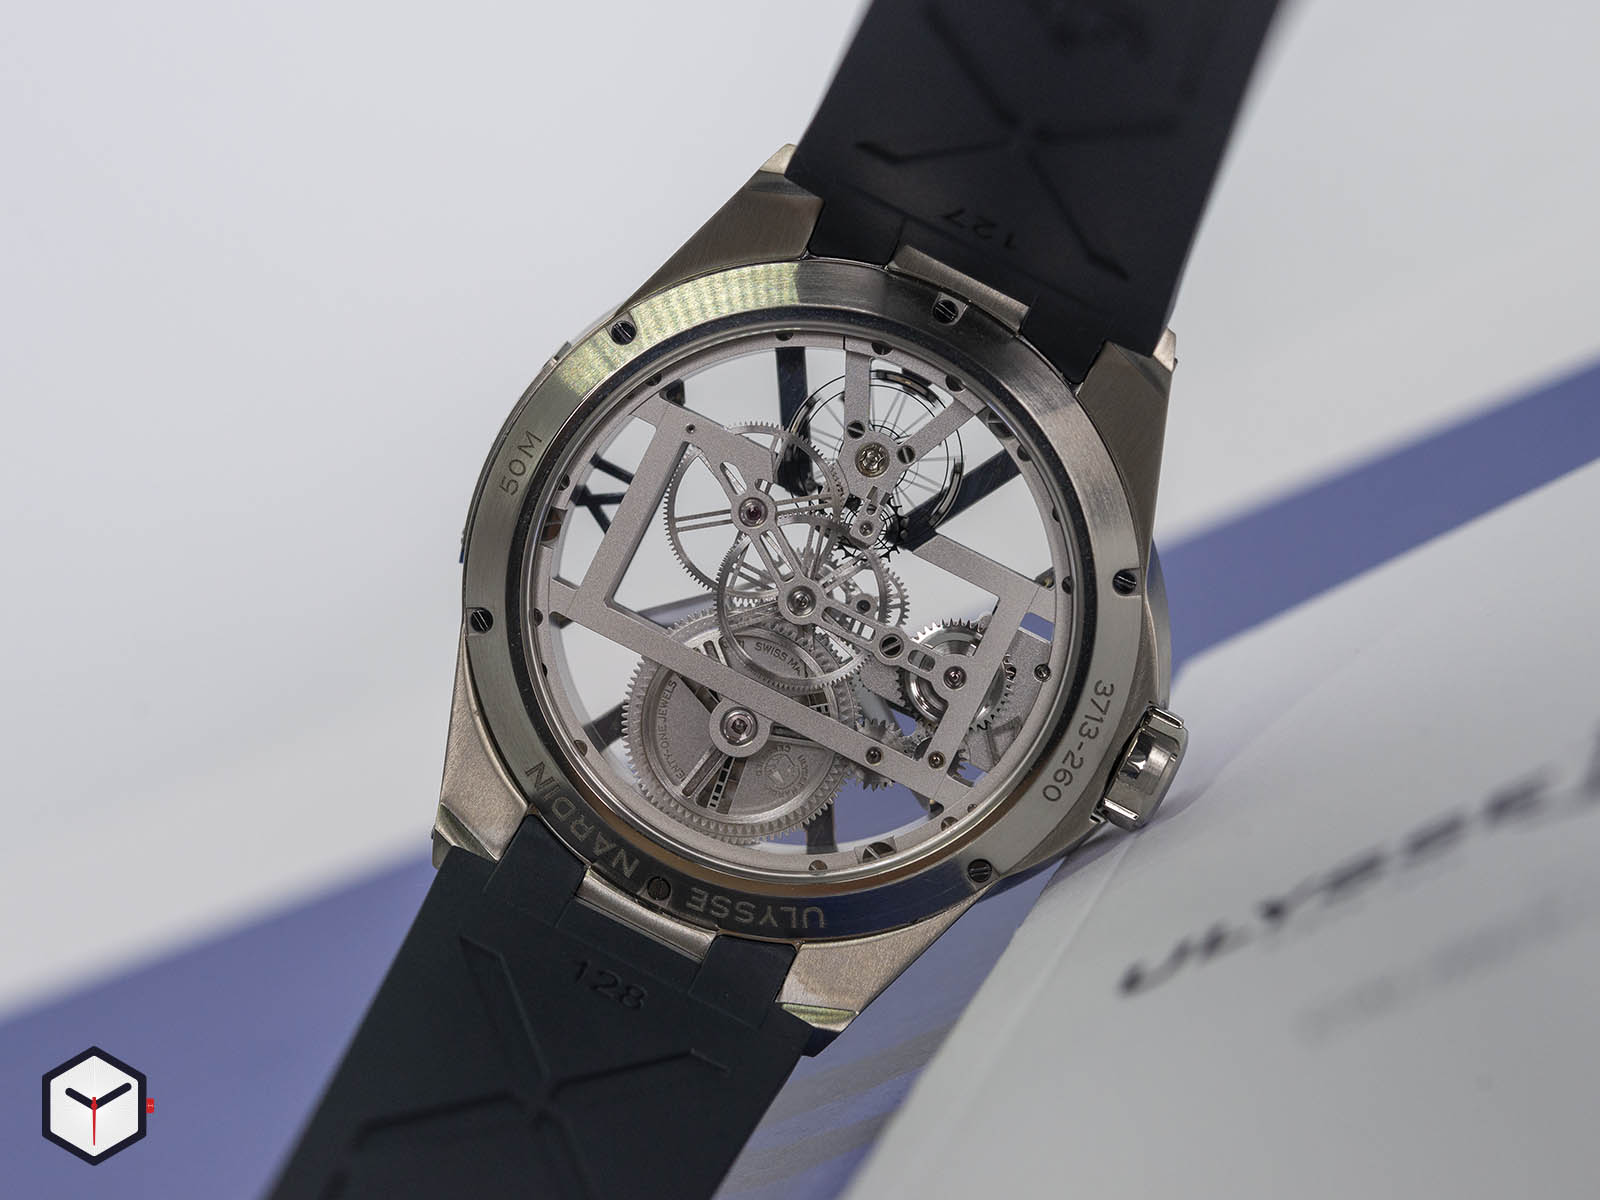 93713-260-3-03-ulysse-nardin-executive-skeleton-x-5.jpg